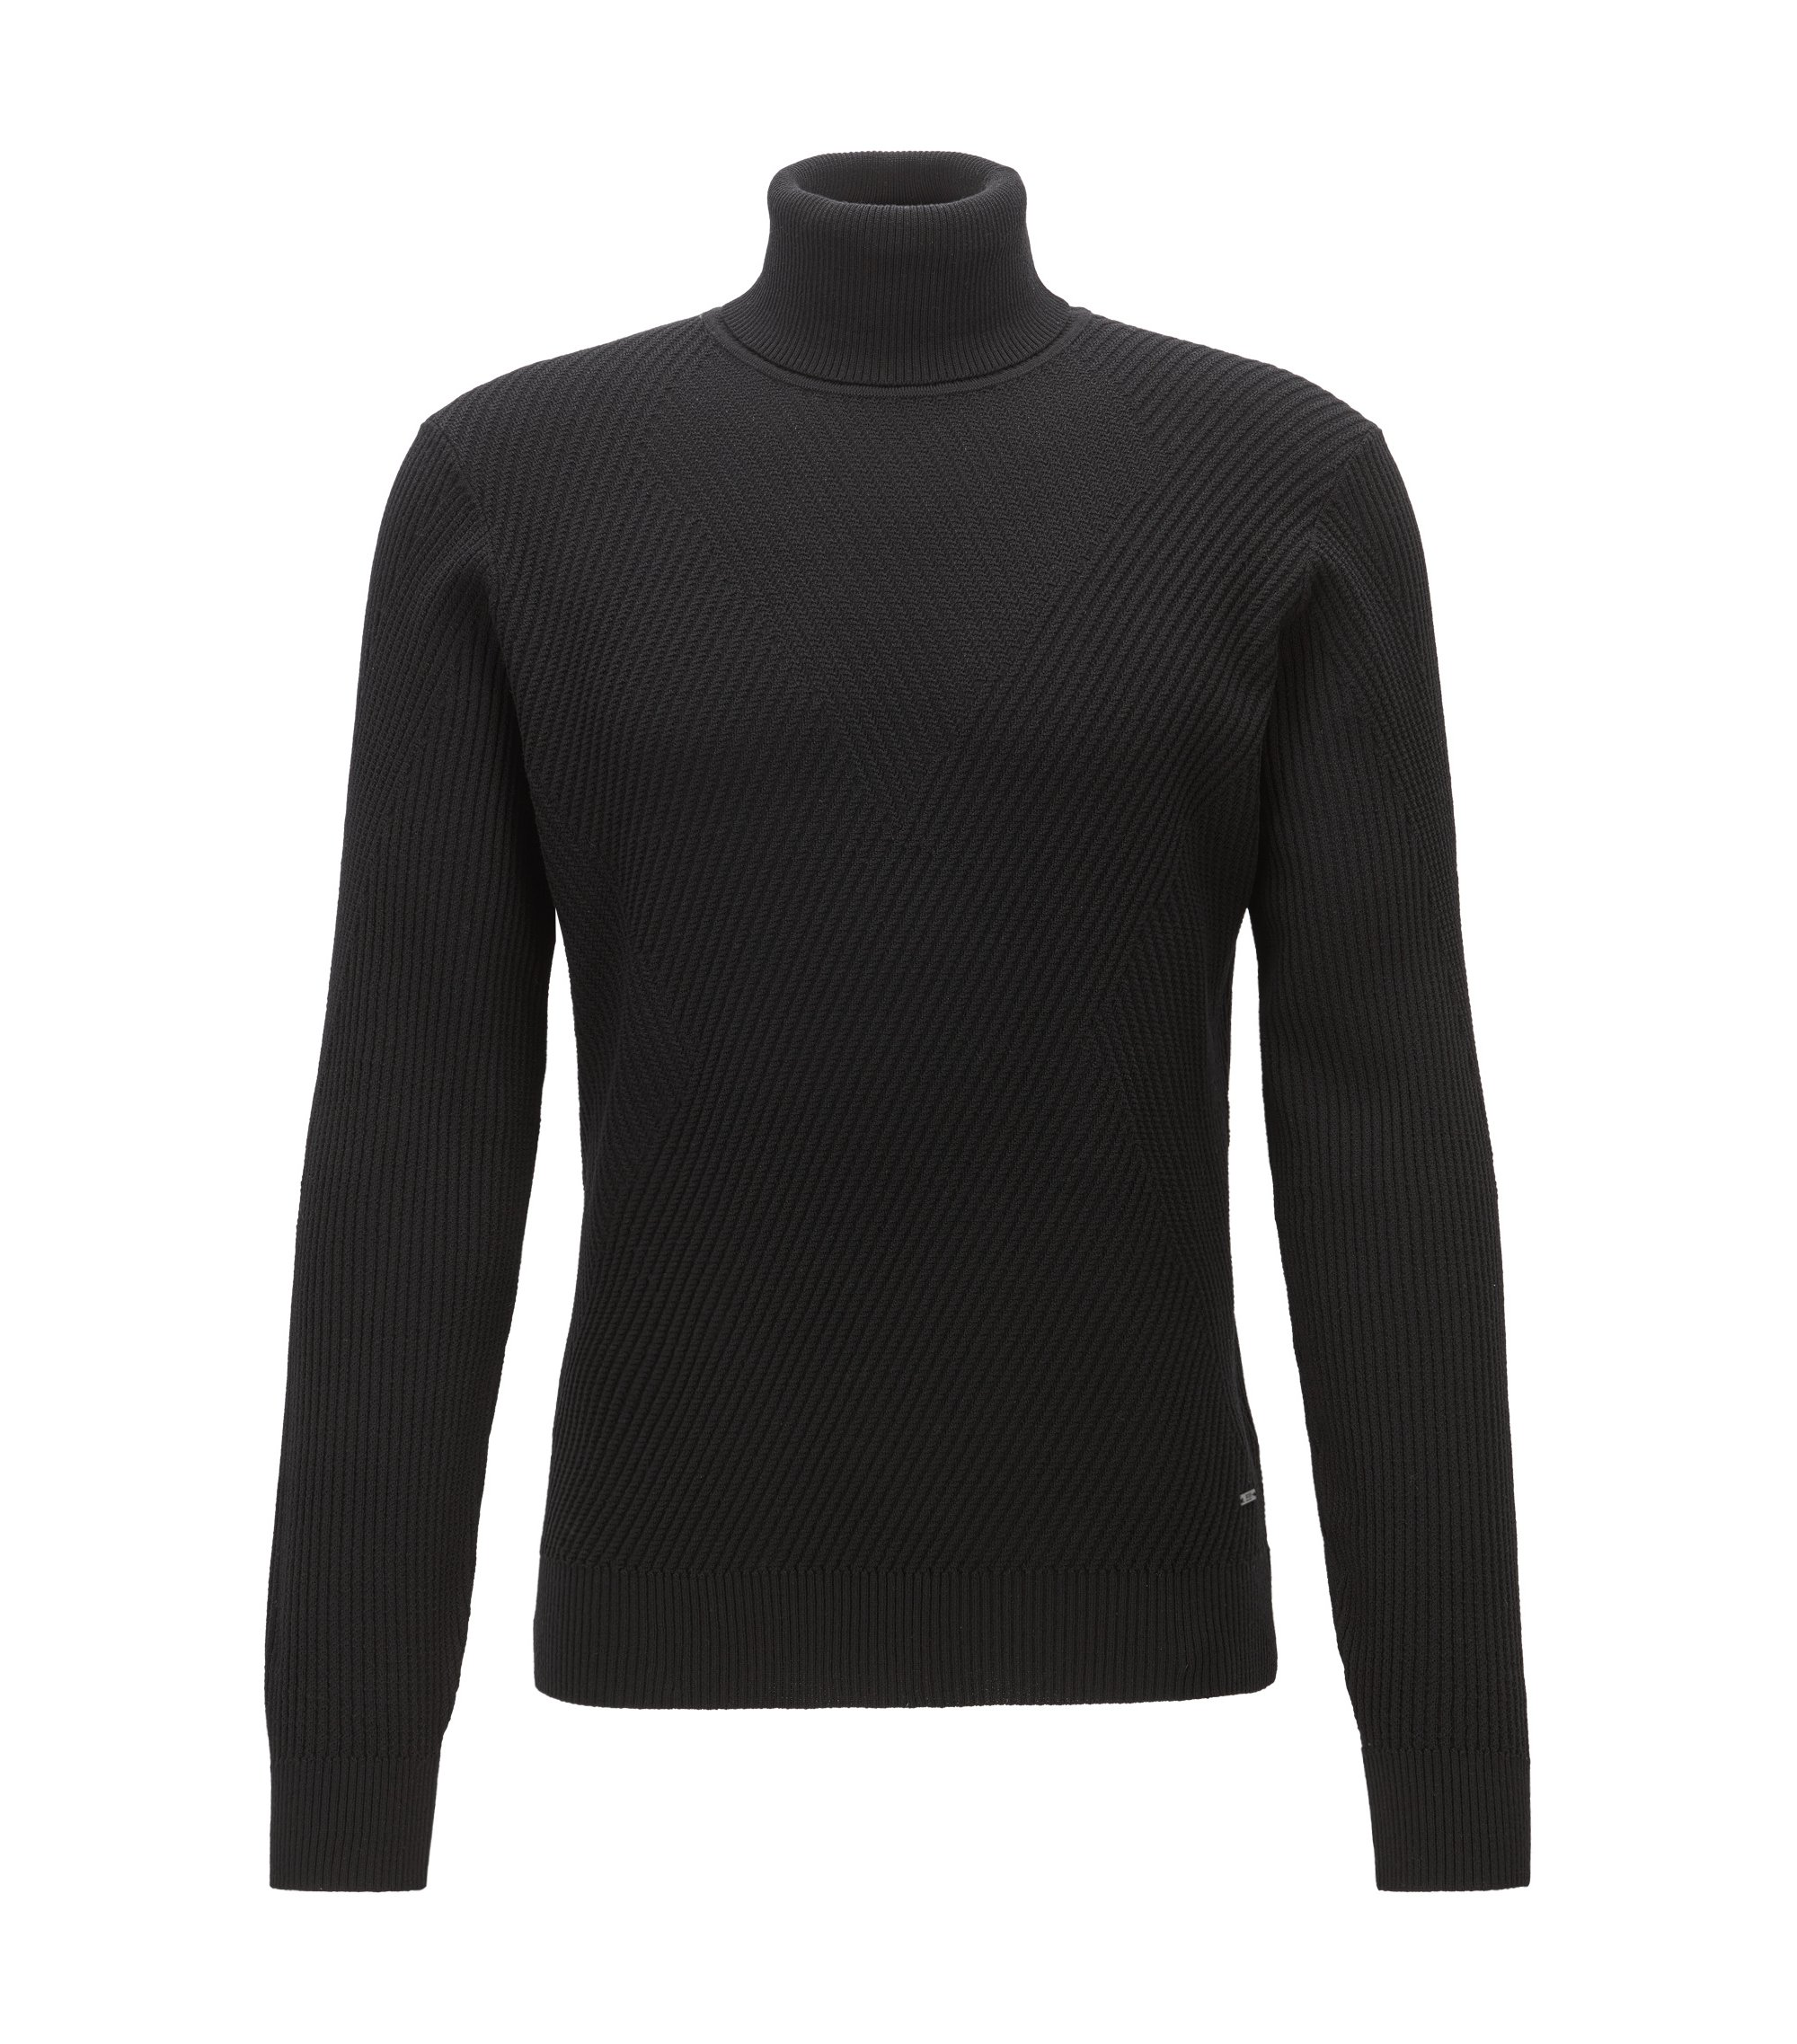 Ribbed Virgin Wool Sweater | Nazzaro, Black